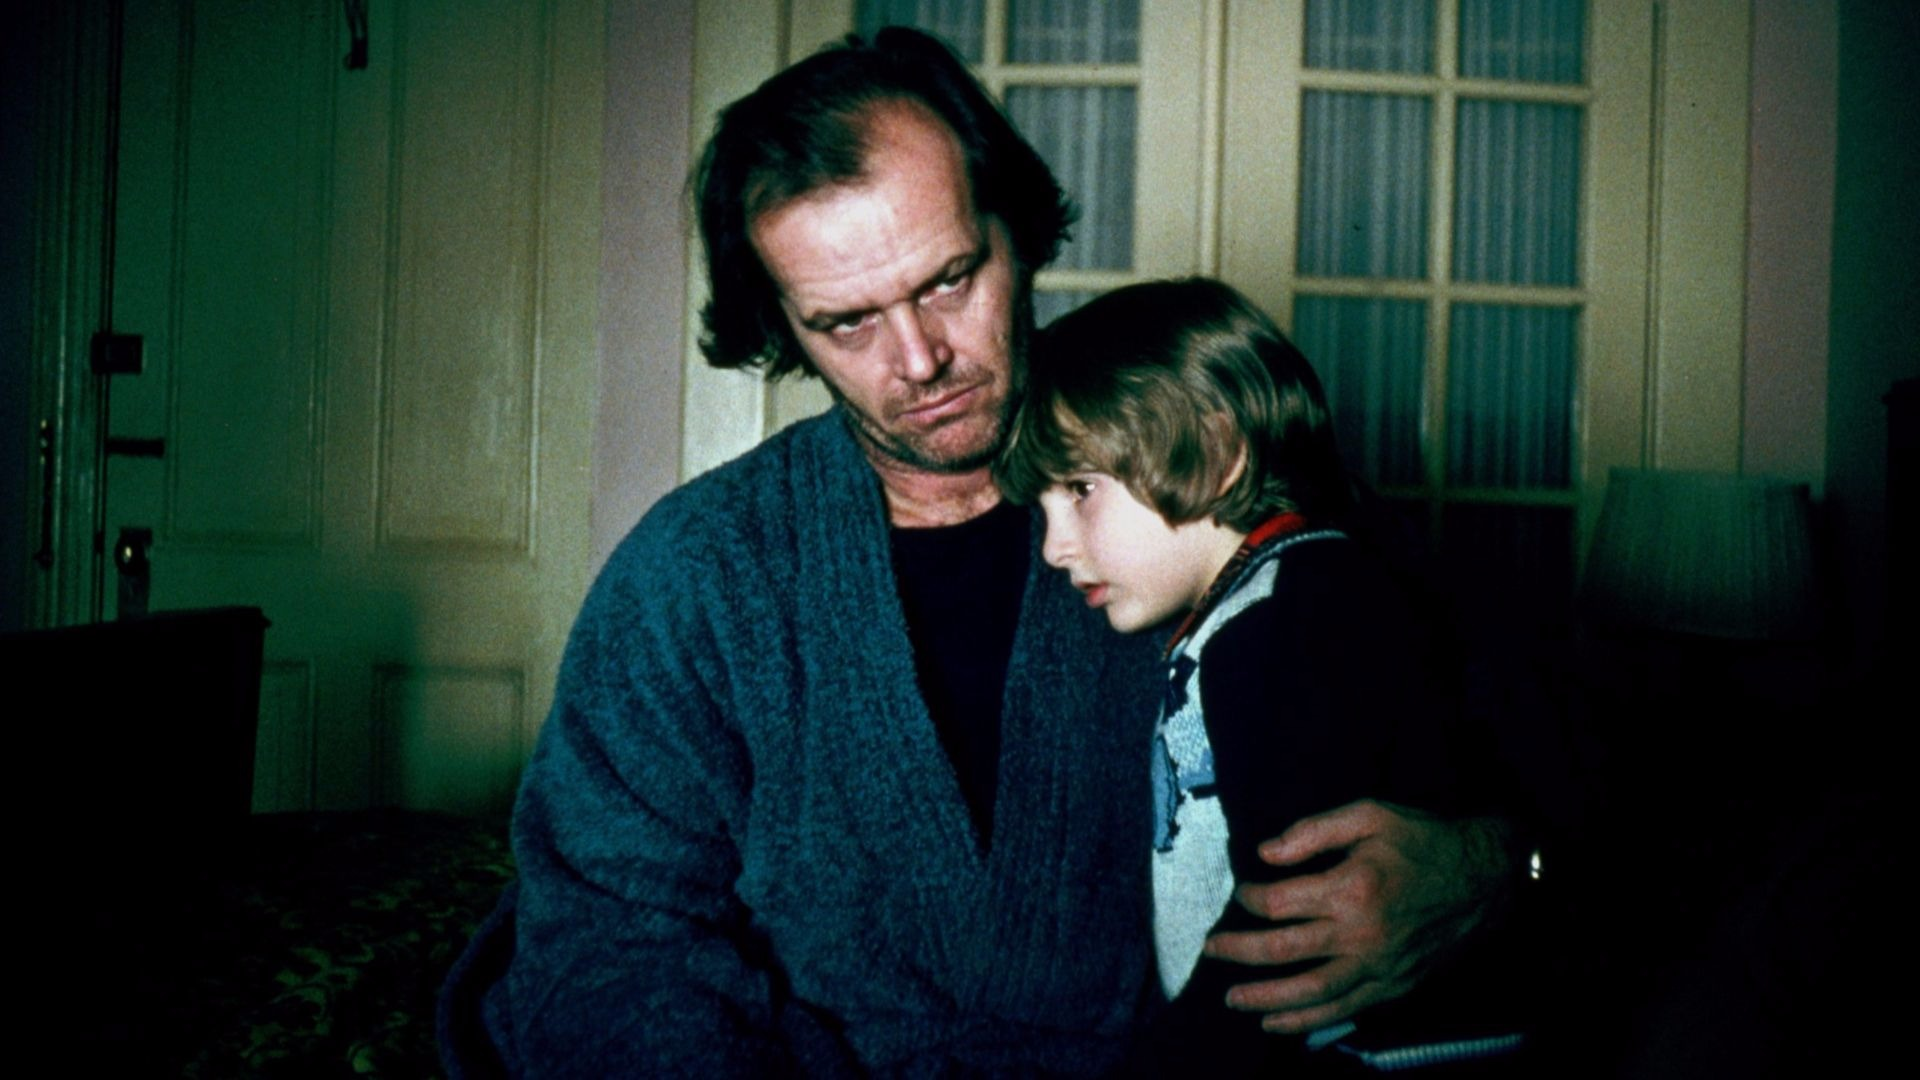 Jack Nicholson and Jack Torrance in The Shining.